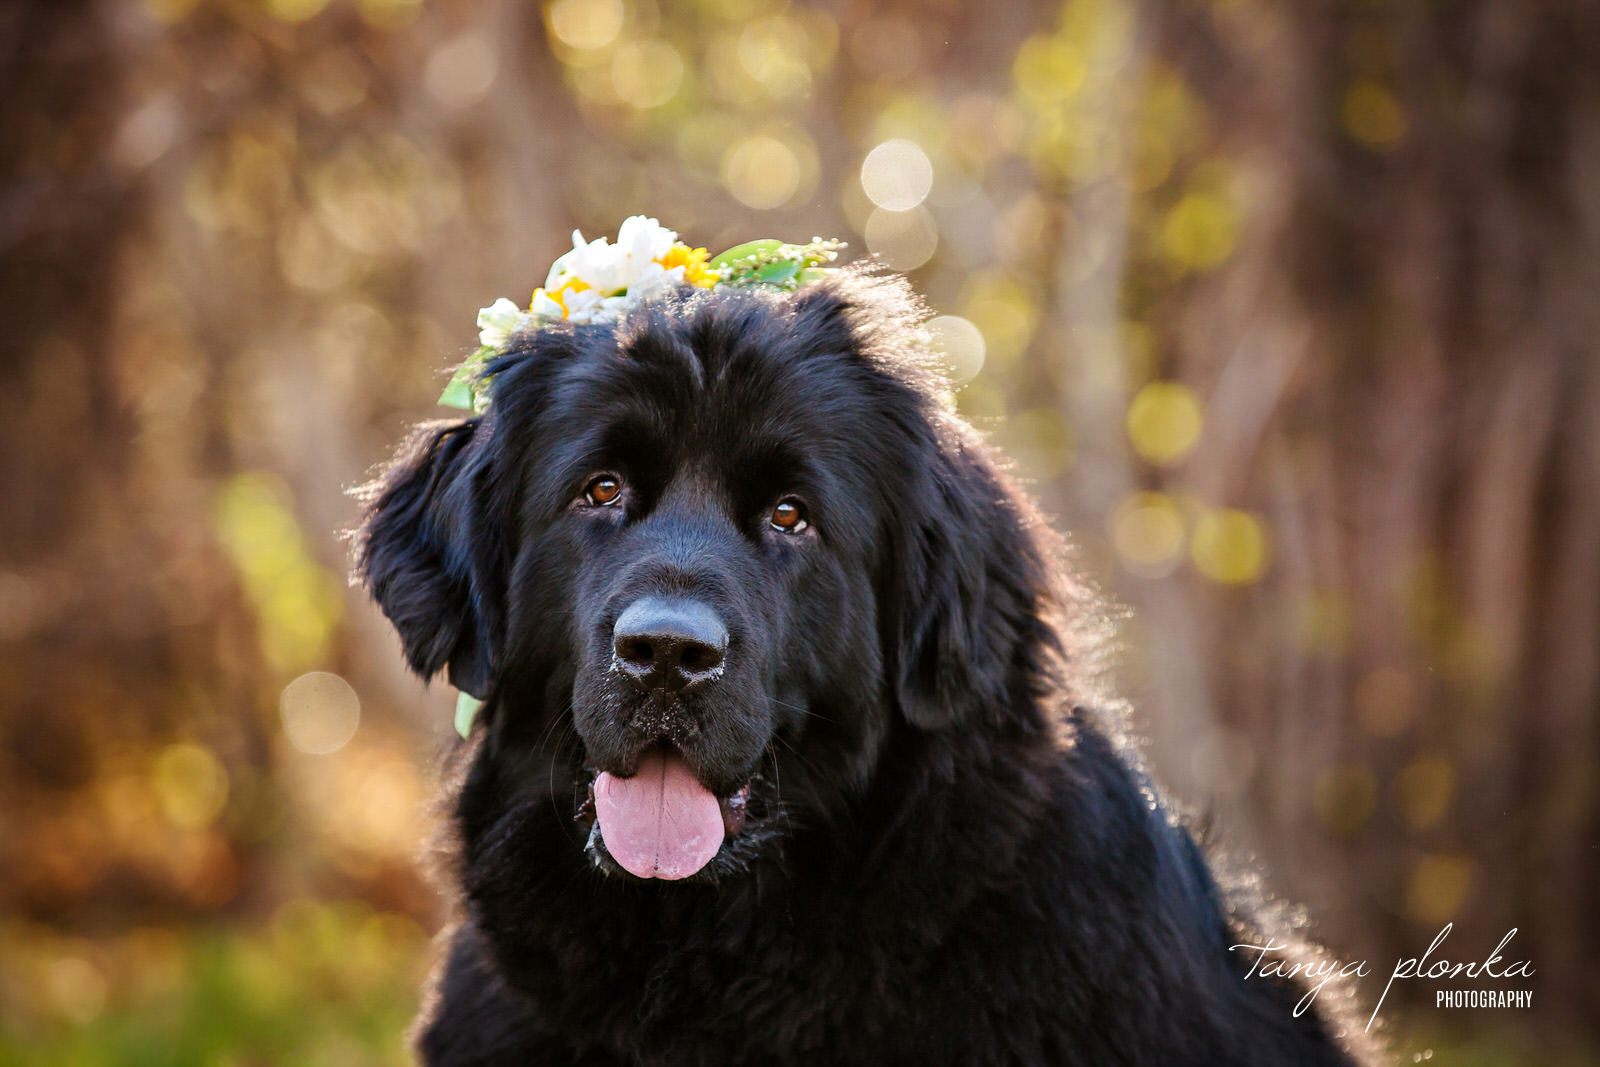 black dog in flower crown looks at camera